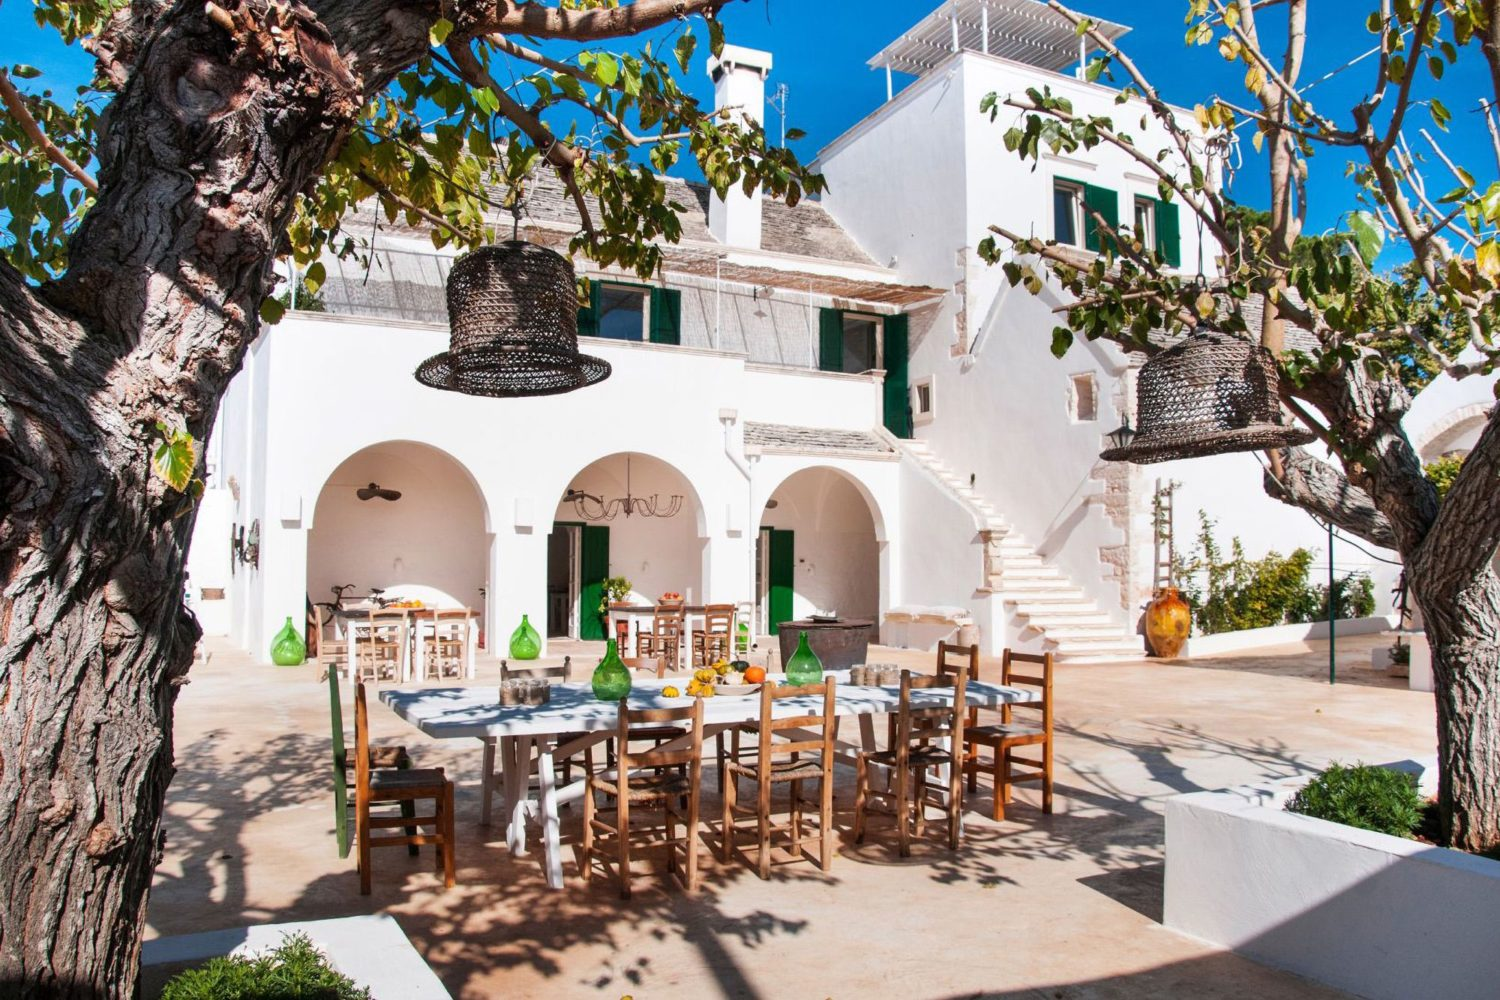 Foodie experiences at Masseria San Michele